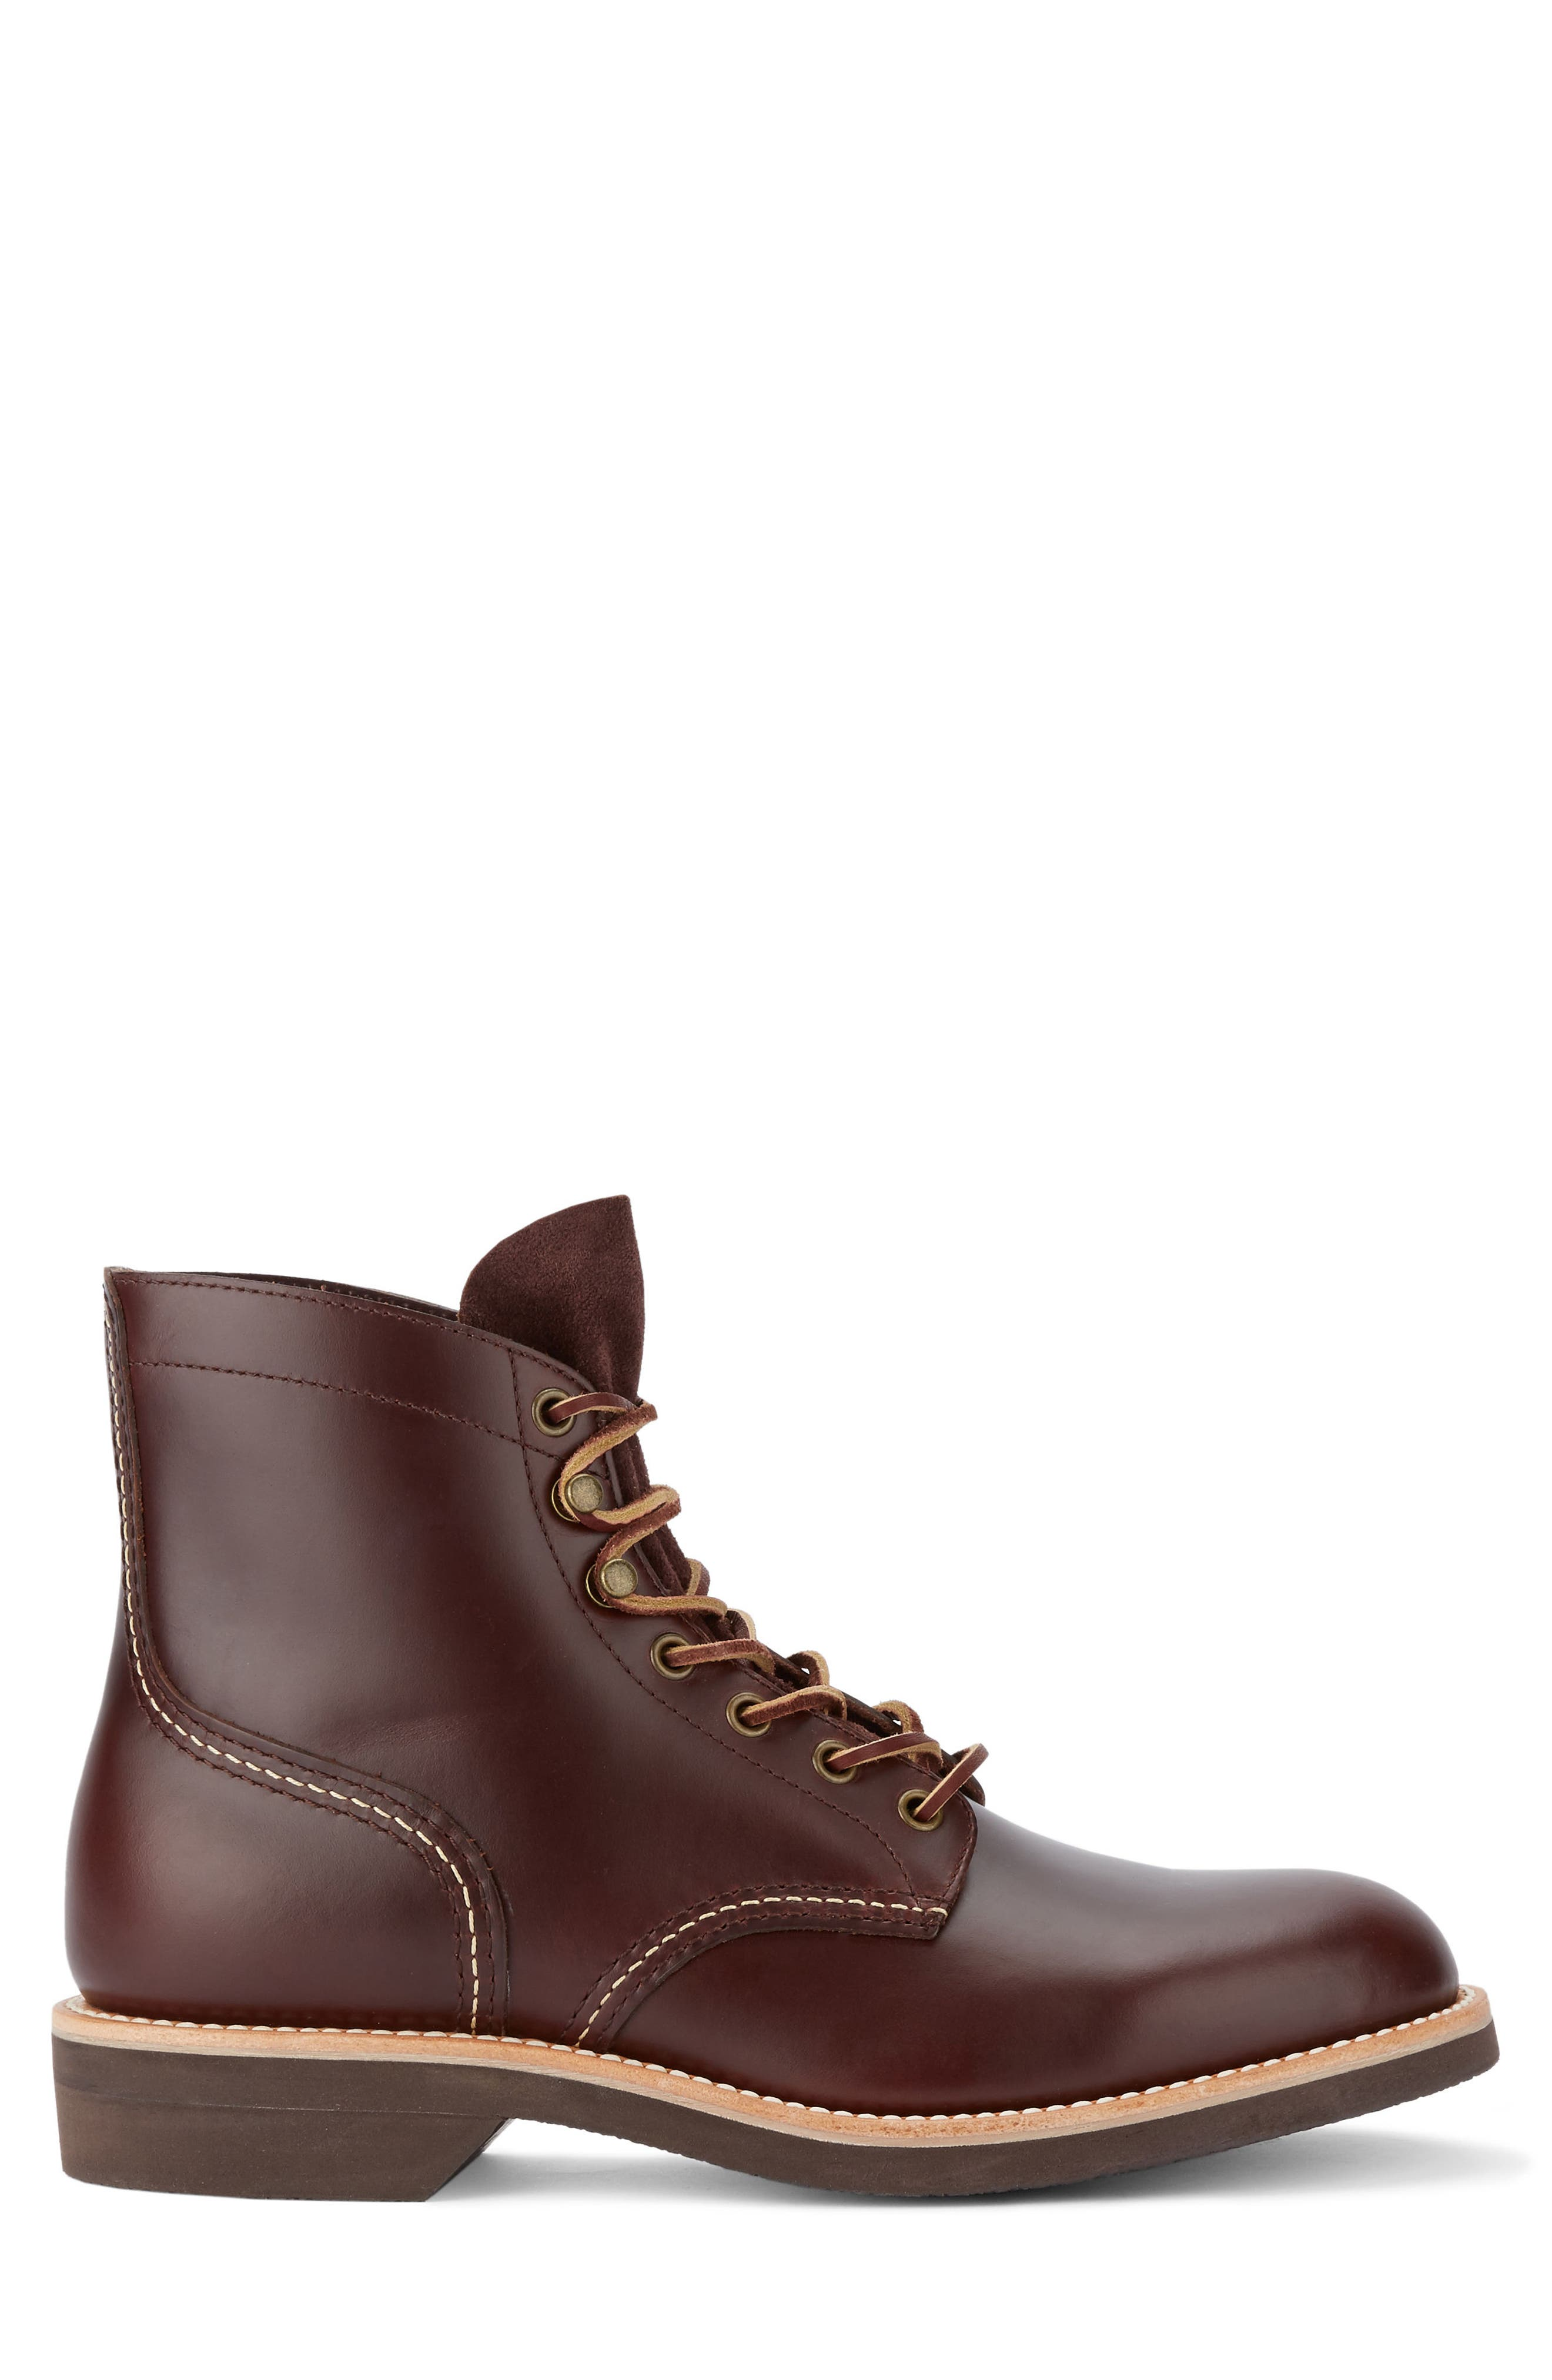 Reid Plain Toe Boot,                             Alternate thumbnail 6, color,